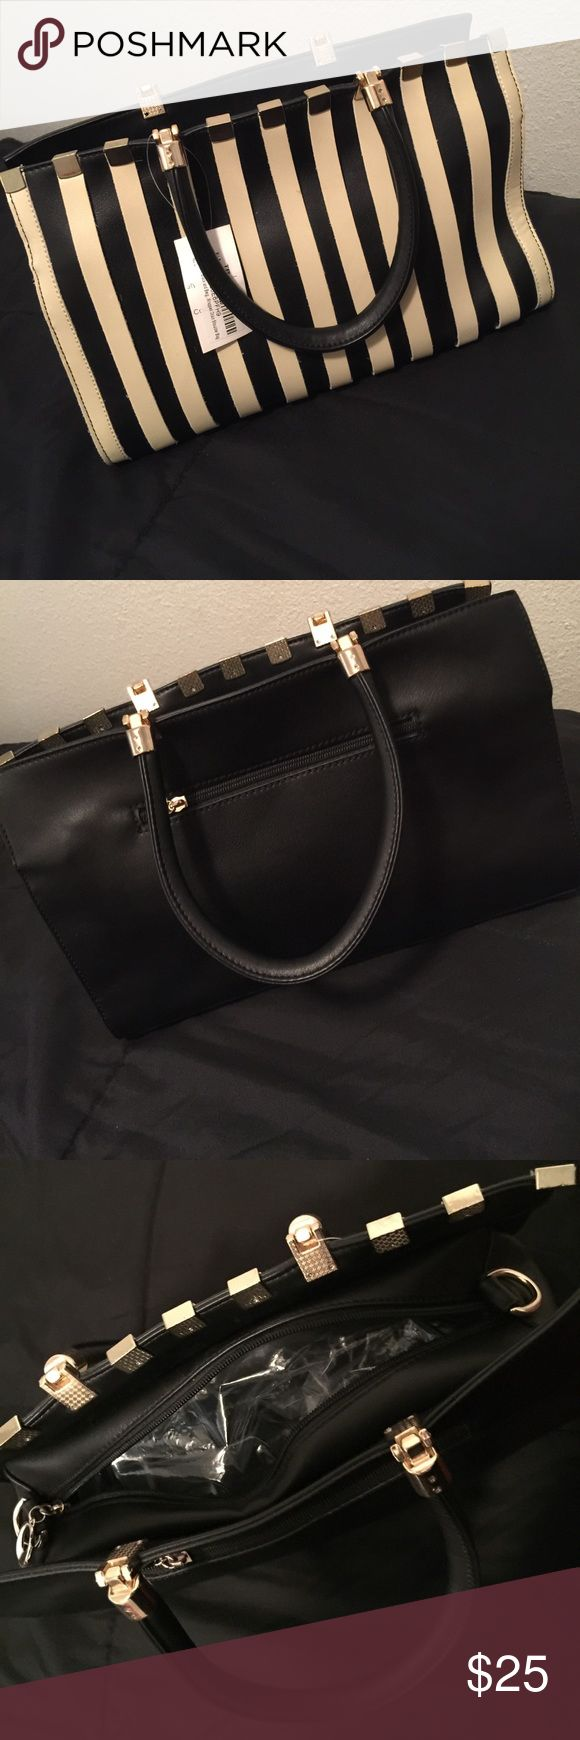 Black and White Striped Purse Black and white/beige bag plus wrapped chain shoulder bag. Never used. jcpenney Bags